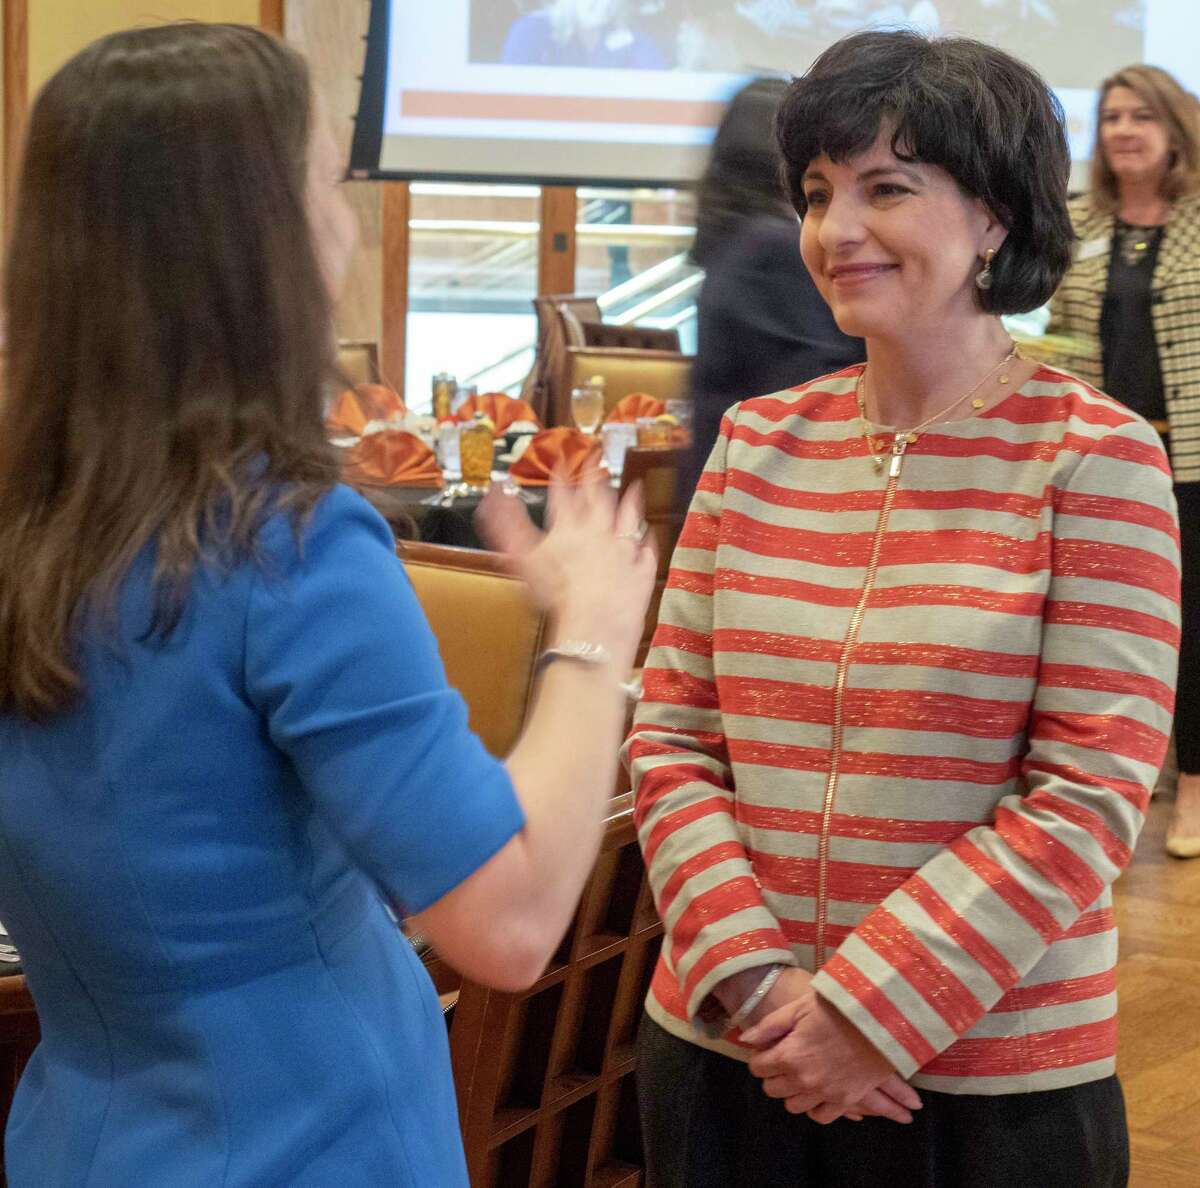 Texas Railroad Commissioner Christi Craddick, talks with Kristin Schmidt before speaking at the Women's Energy Network luncheon.